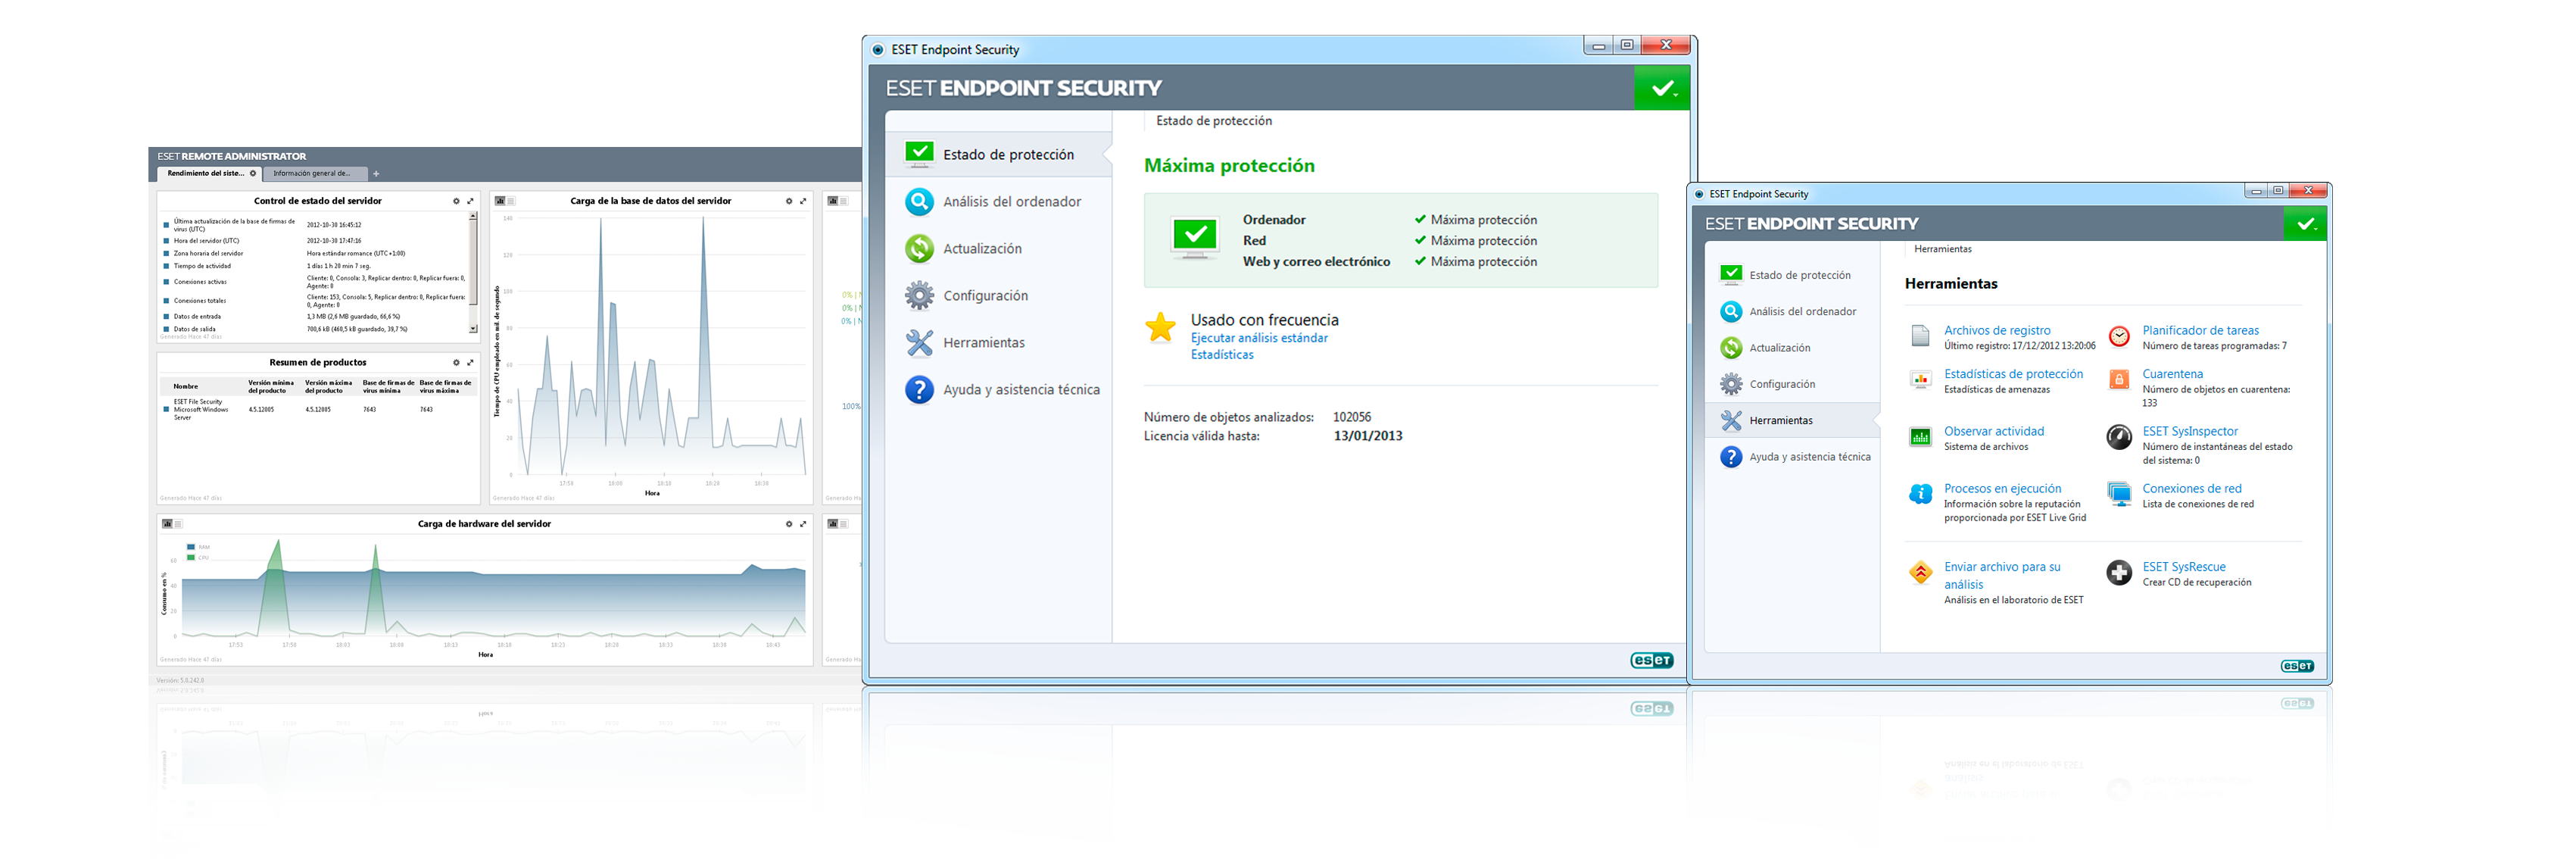 Open Screenshot Gallery for ESET NOD32 Endpoint Security